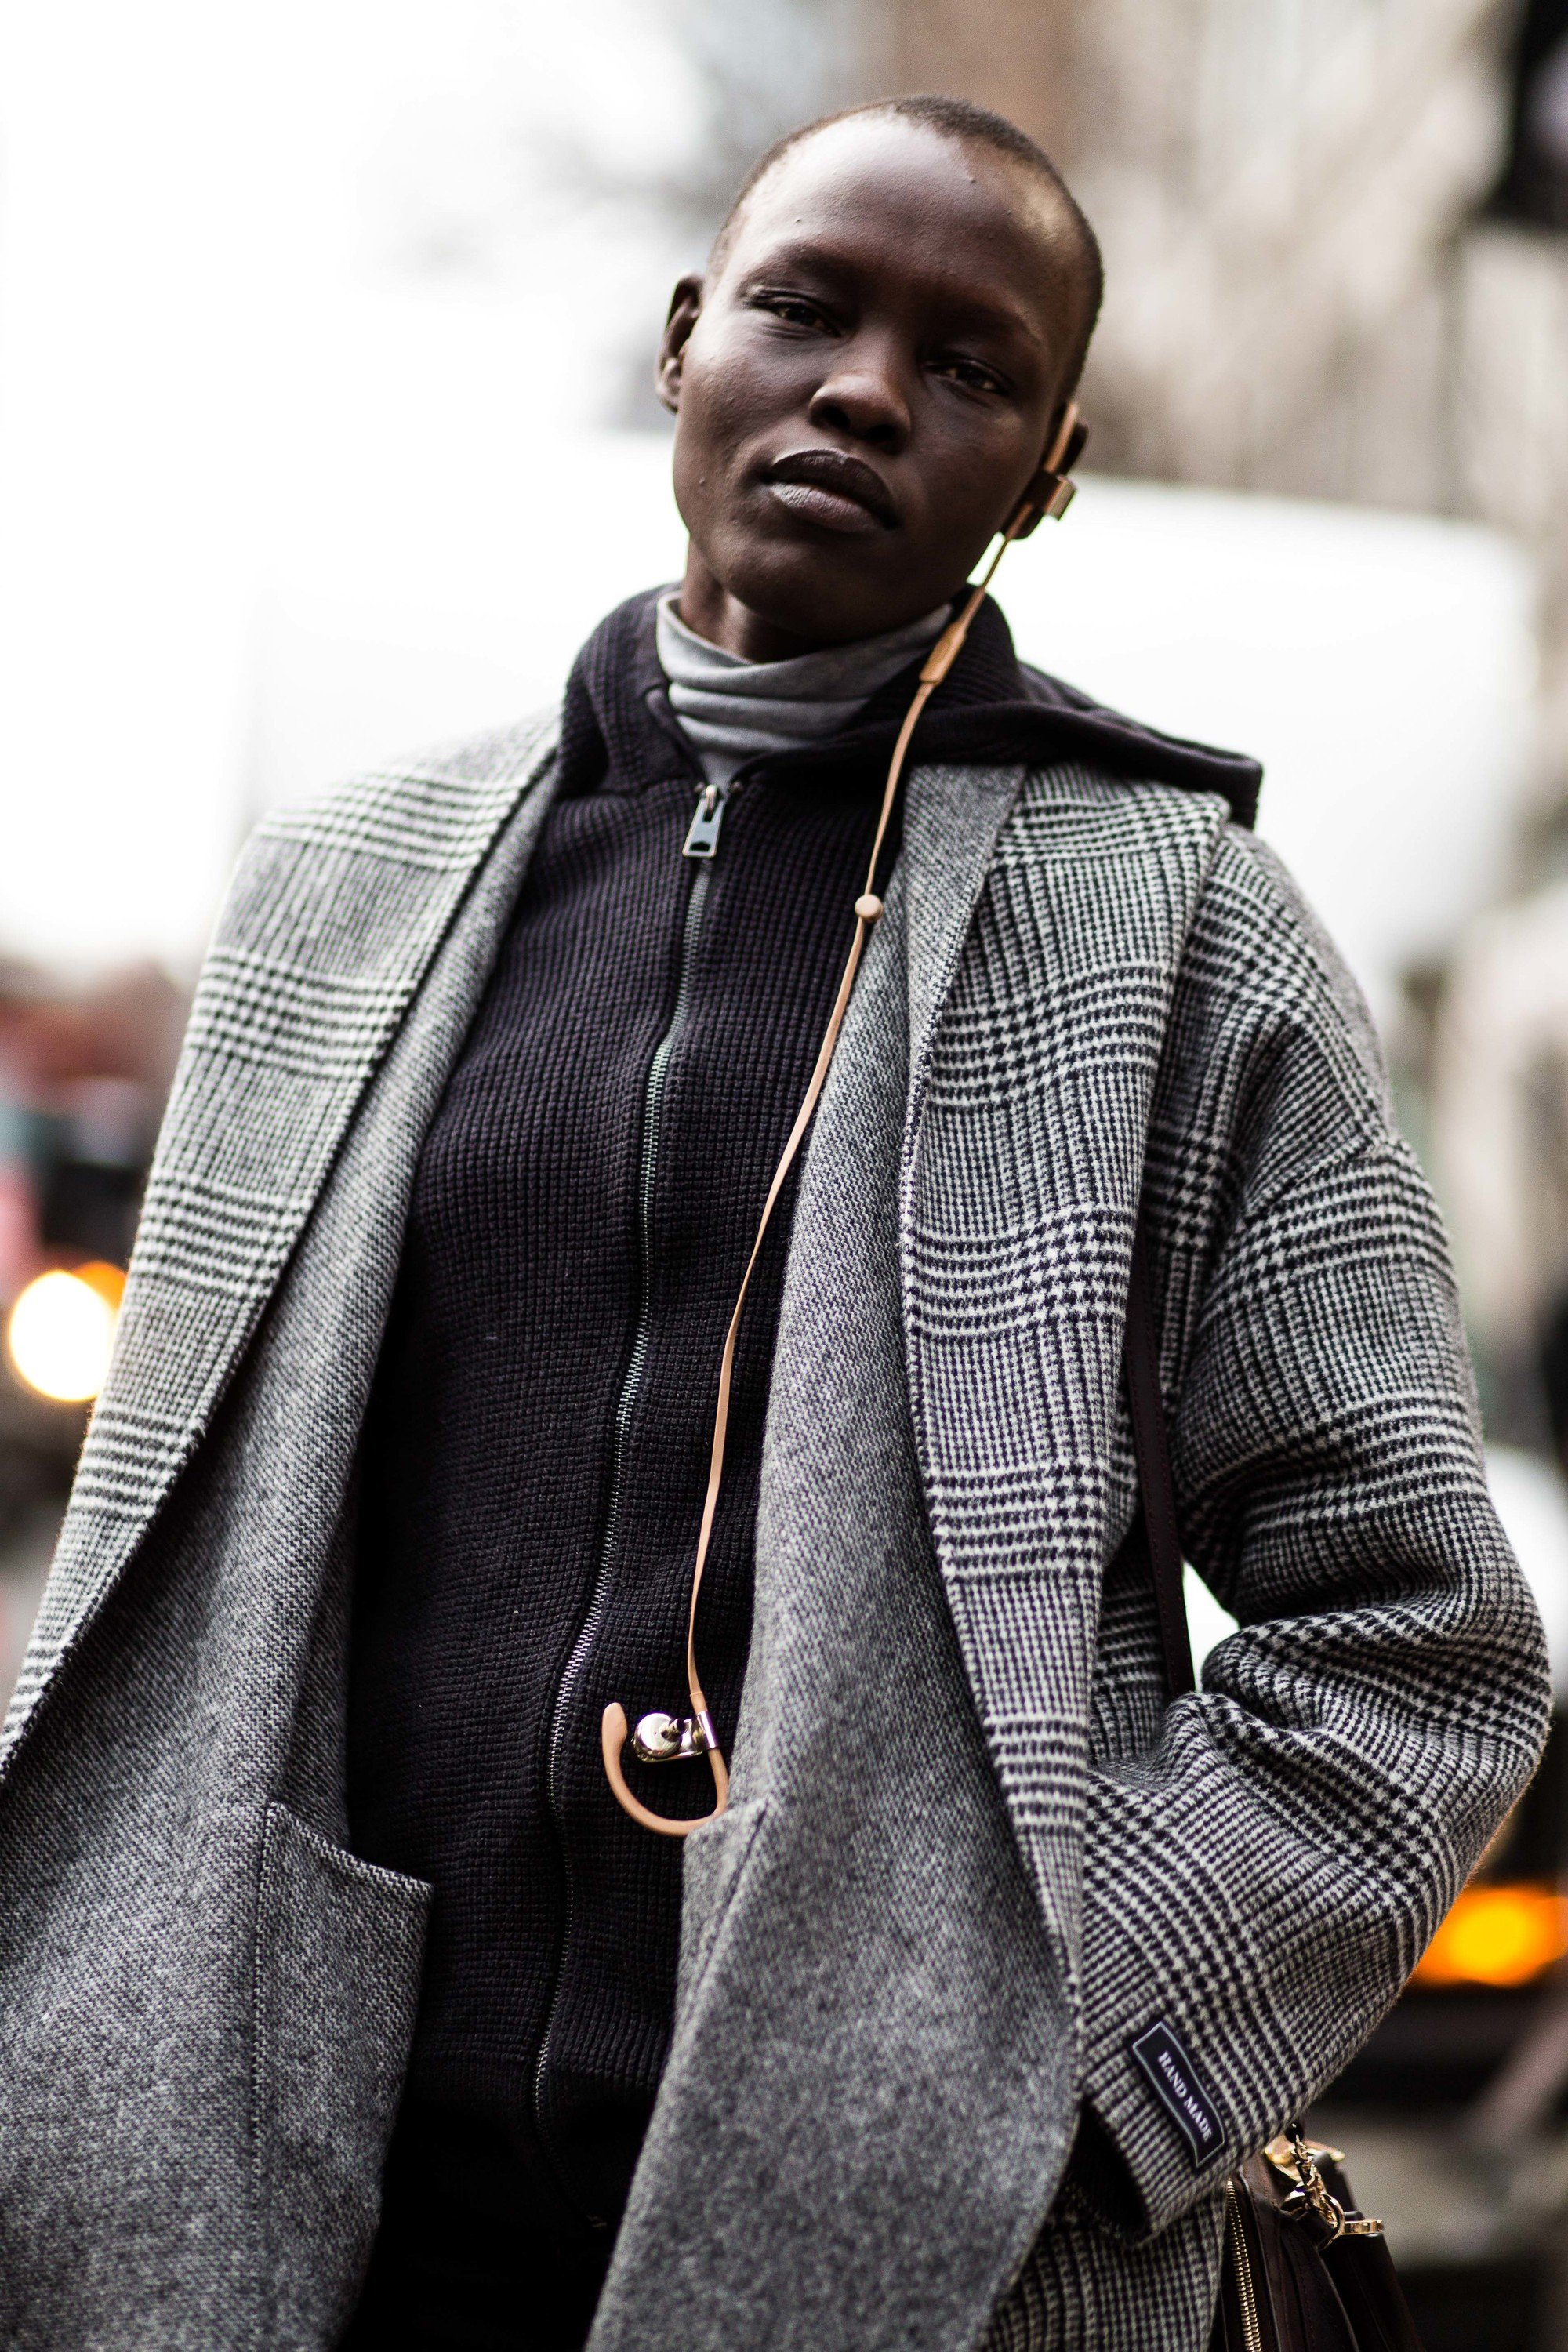 Black woman with short hair standing outside fashion week show looking at camera